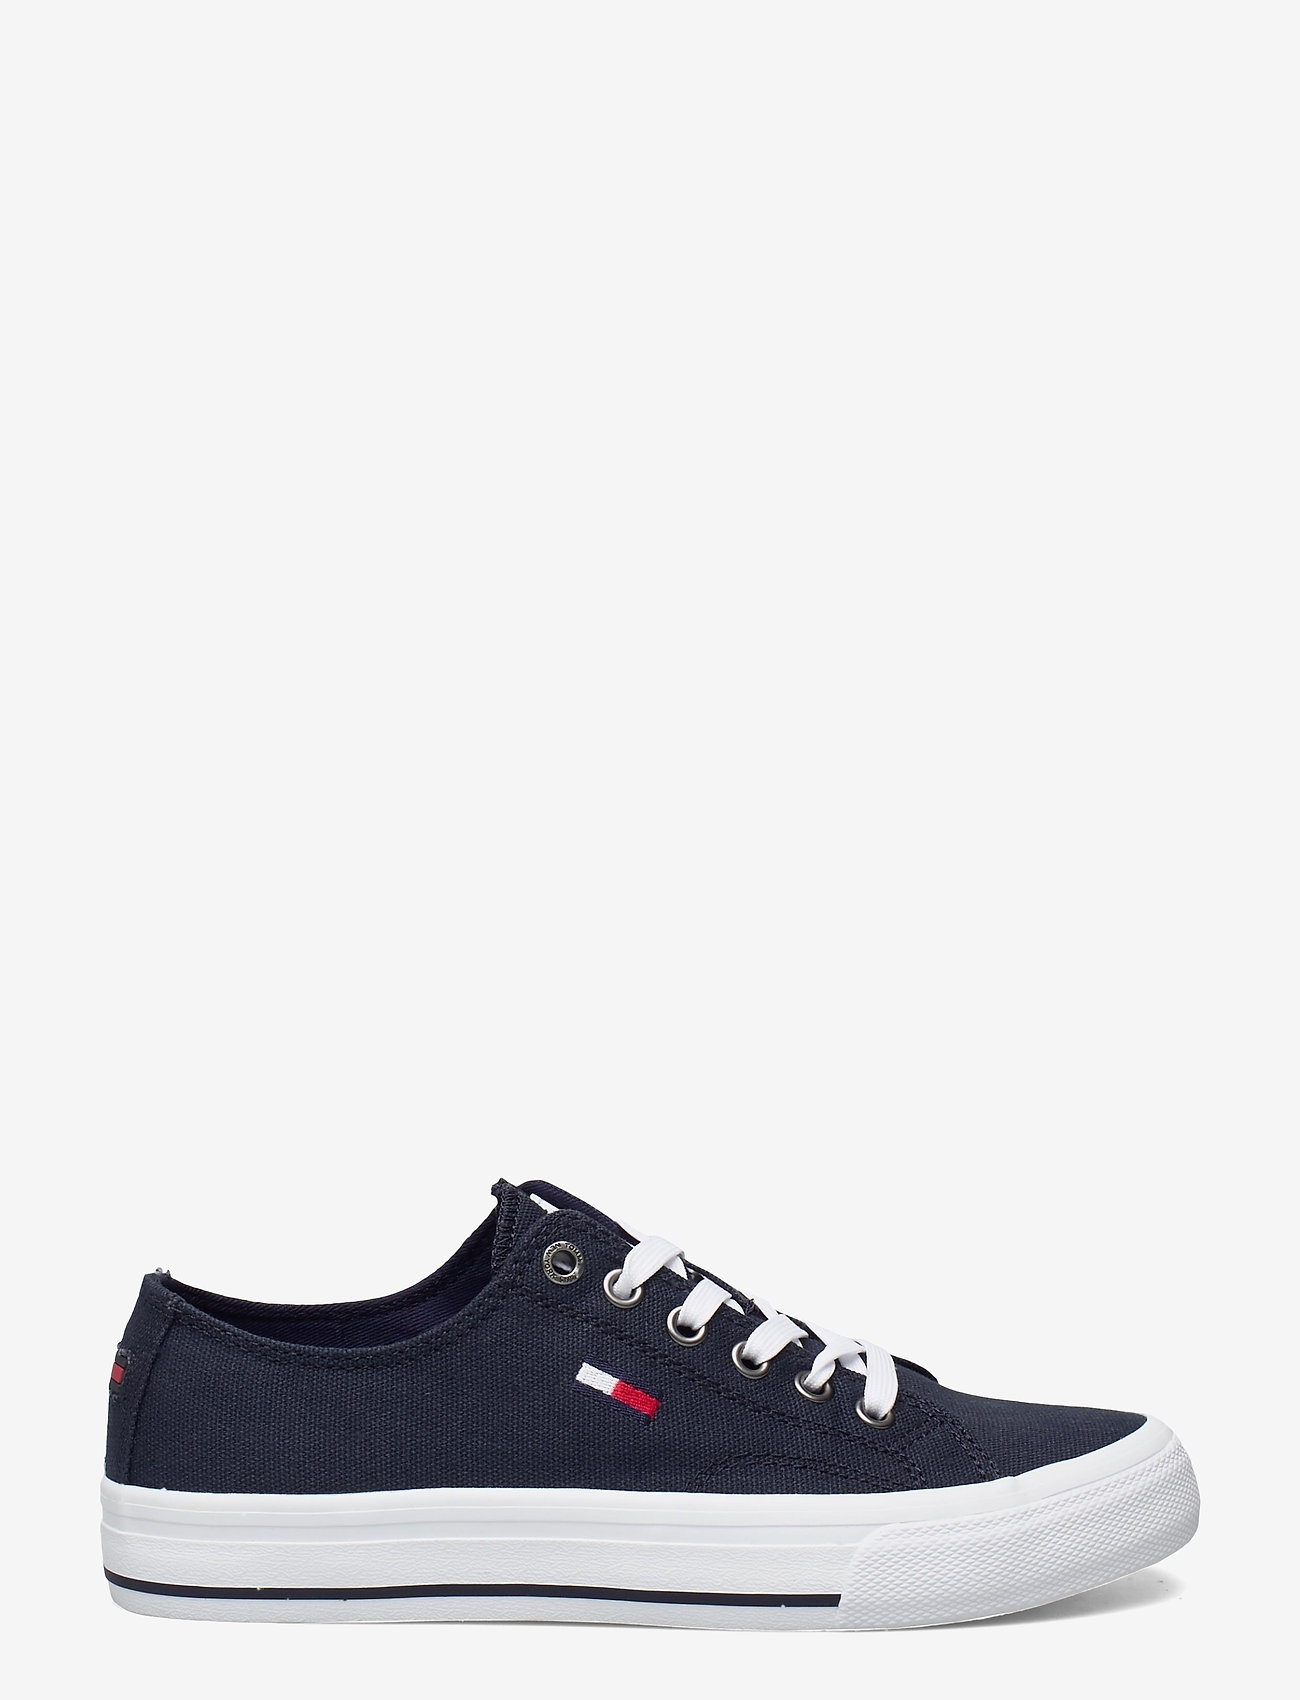 Tommy Hilfiger - TOMMY JEANS LOW CUT VULC - low top sneakers - twilight navy - 1